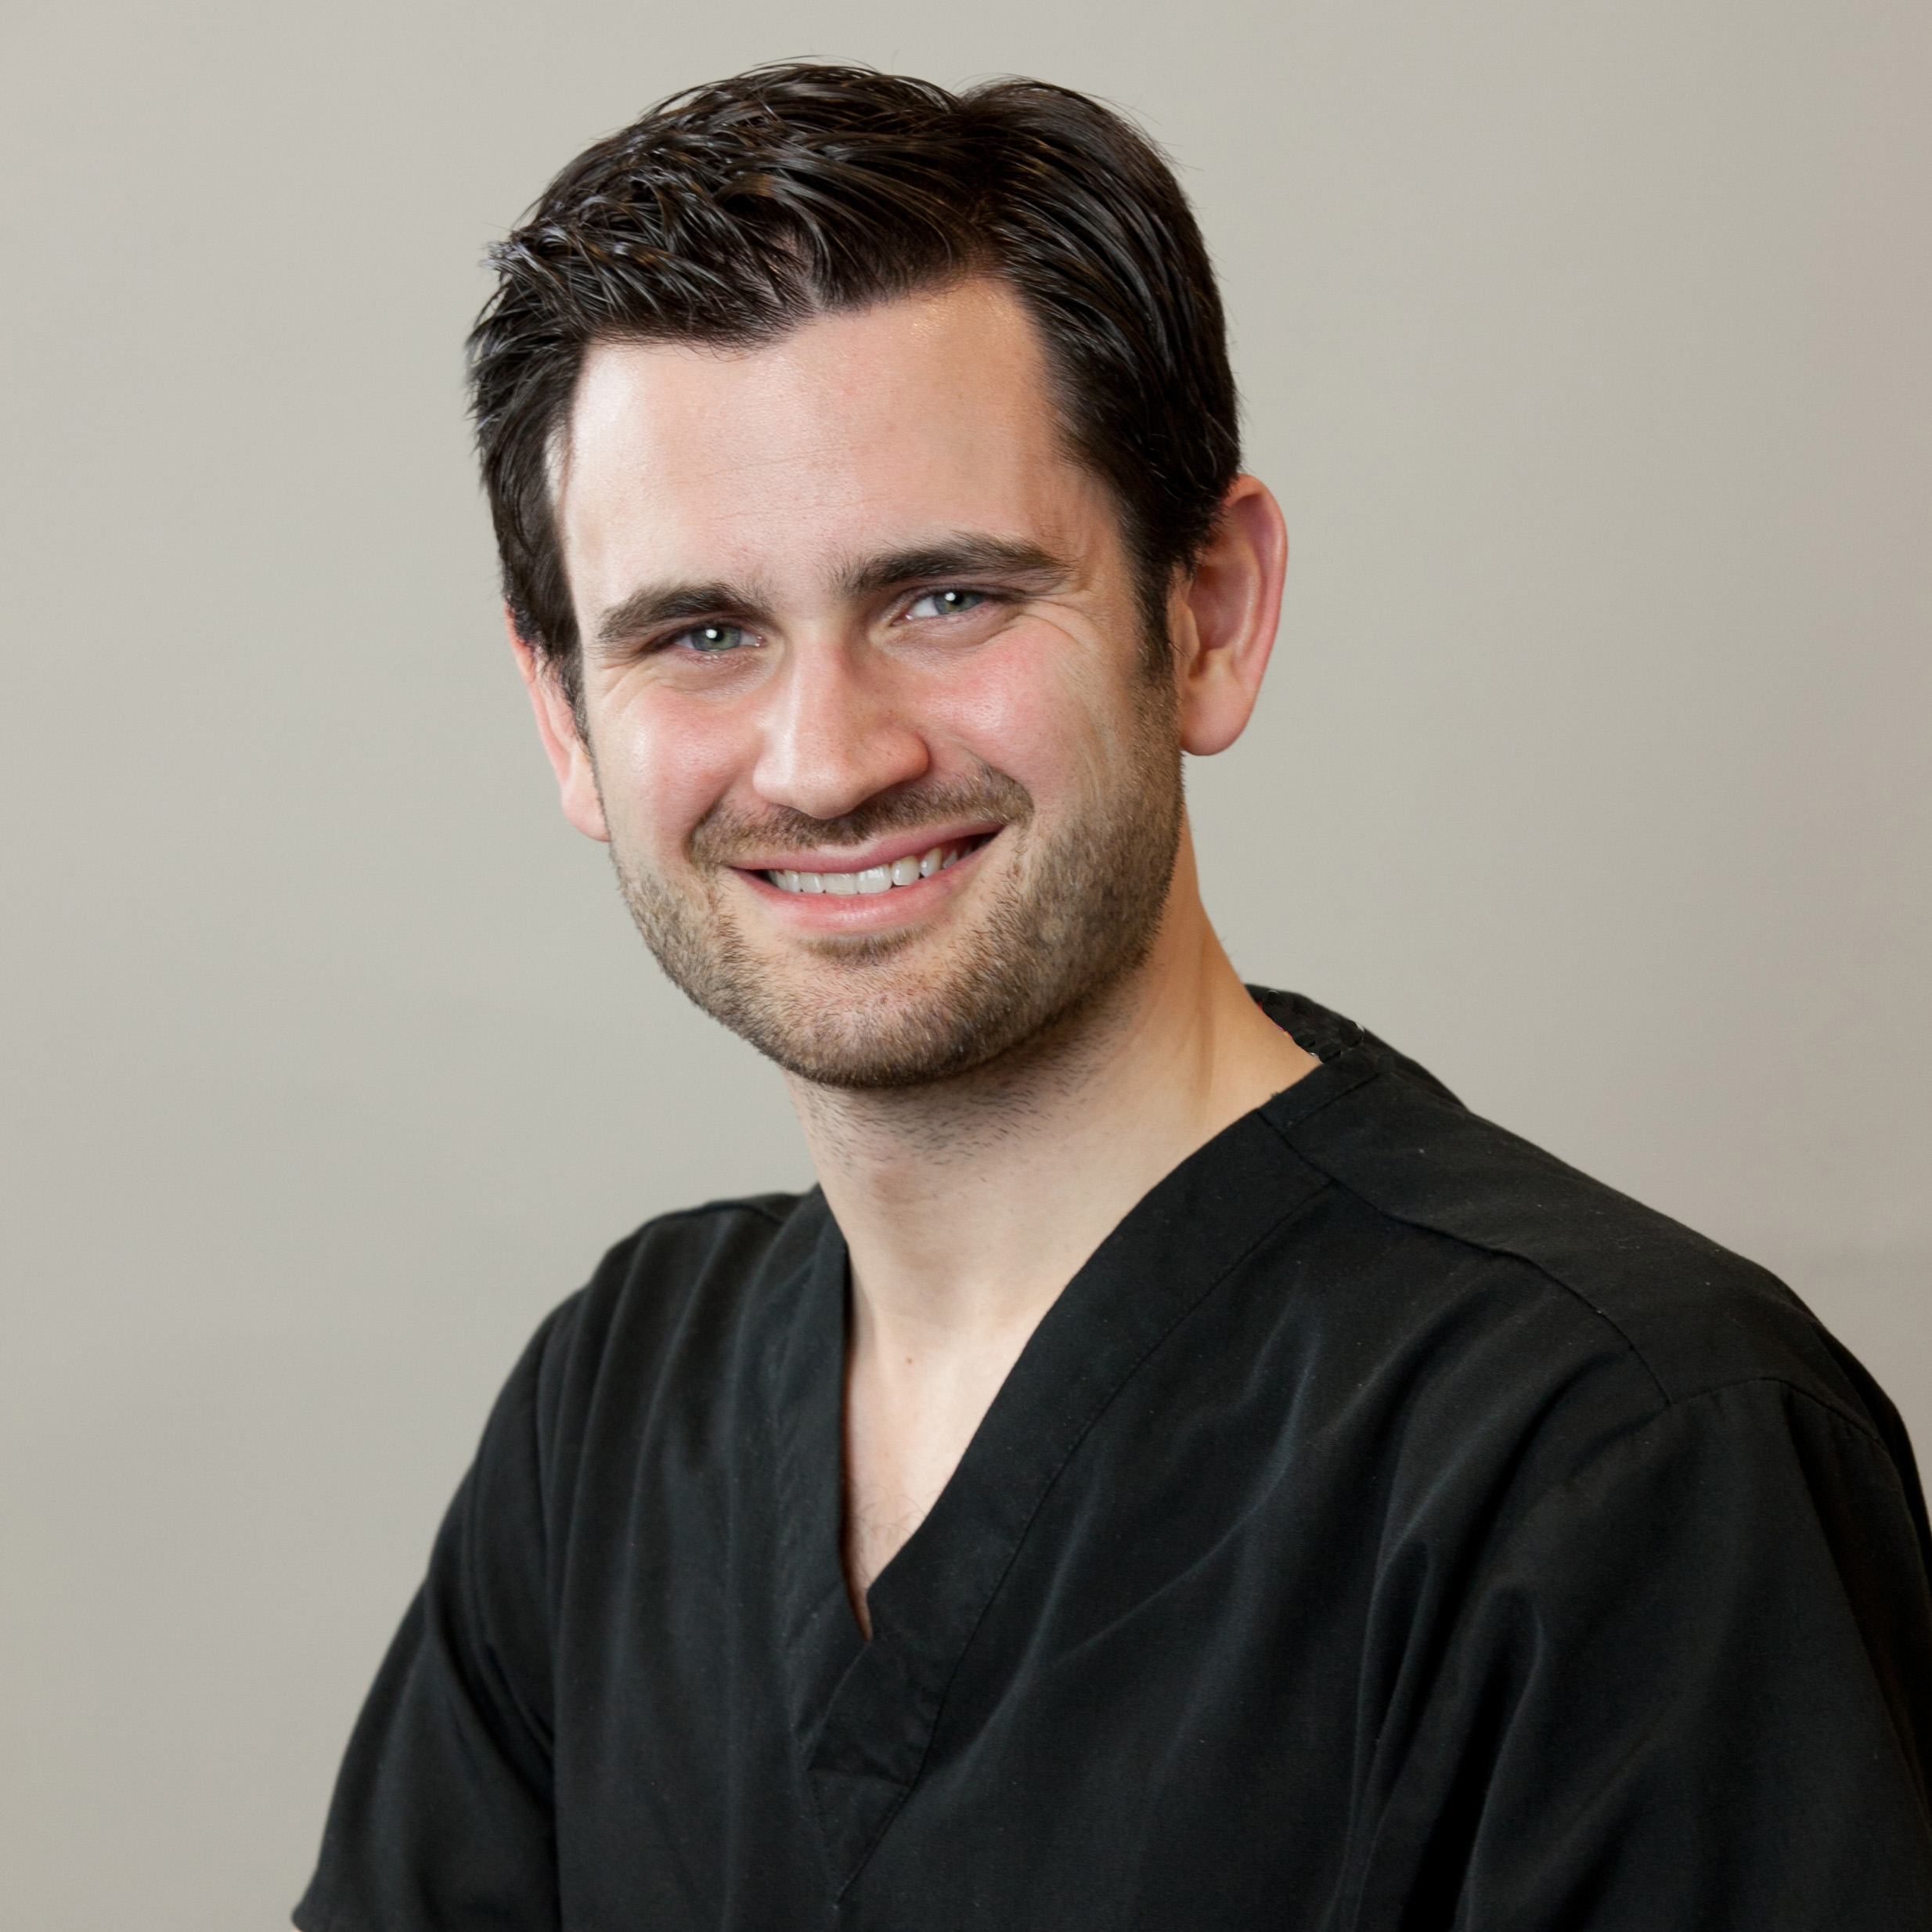 The Past, Present and Future of Dentistry - Dr. Chris Salierno